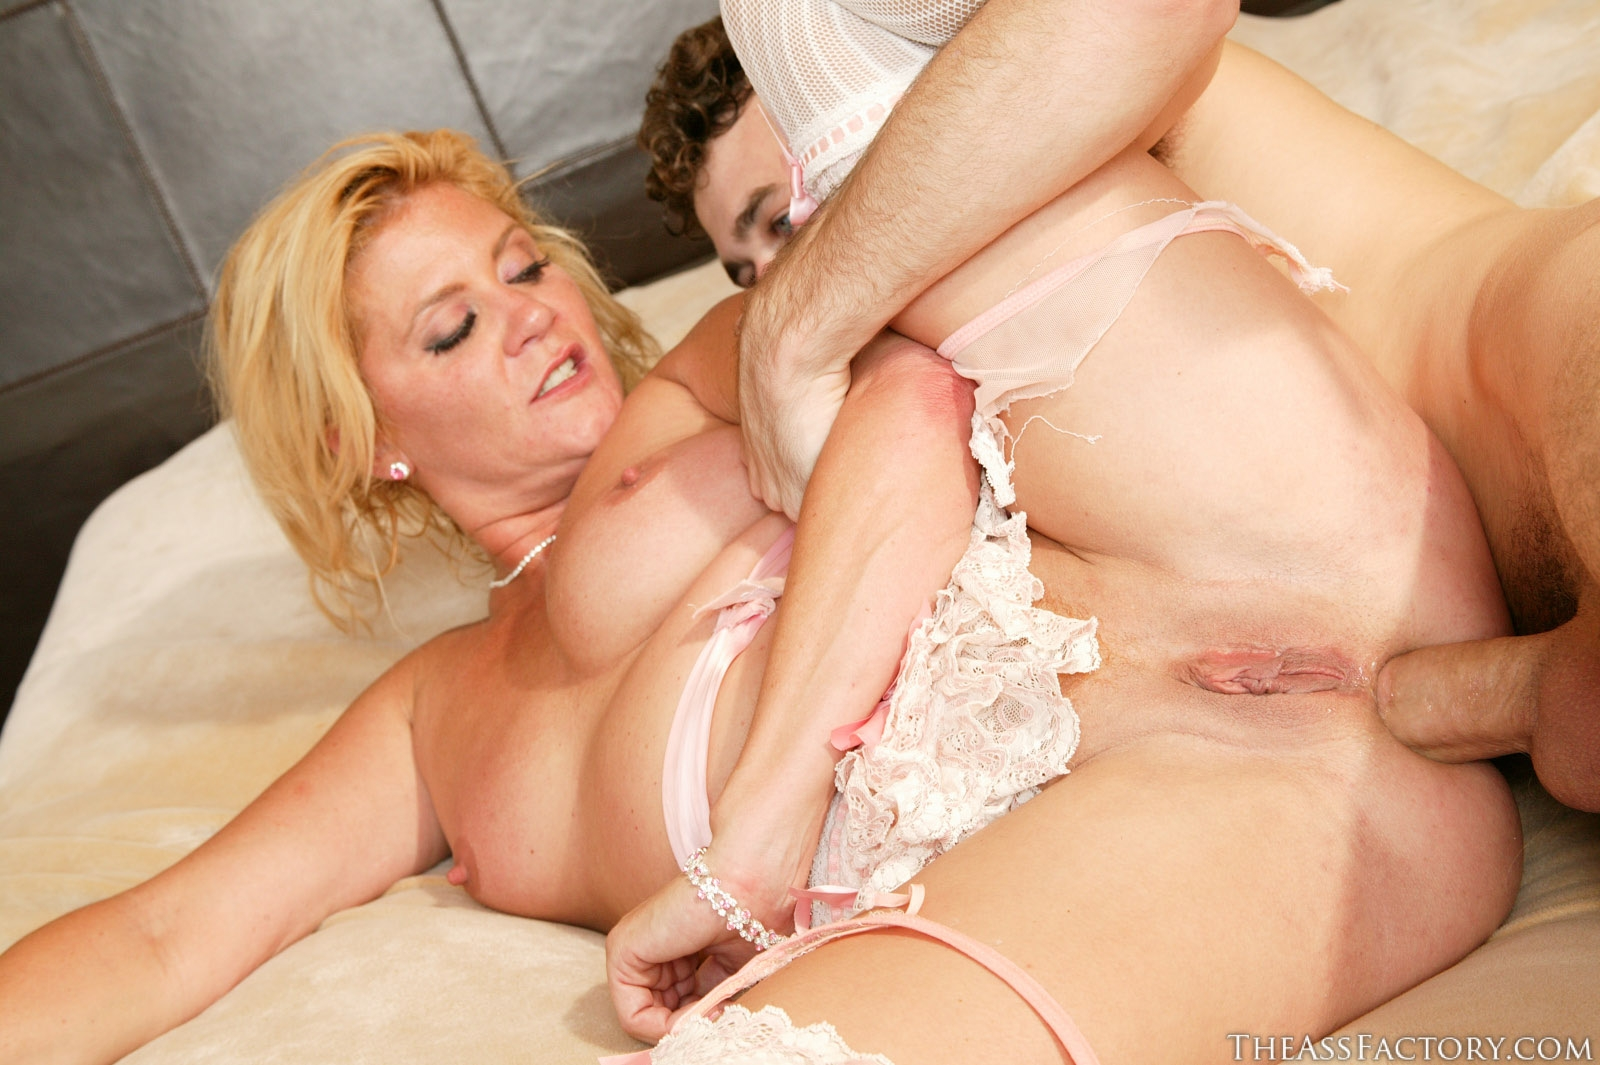 Ginger lynn and angel lesbian